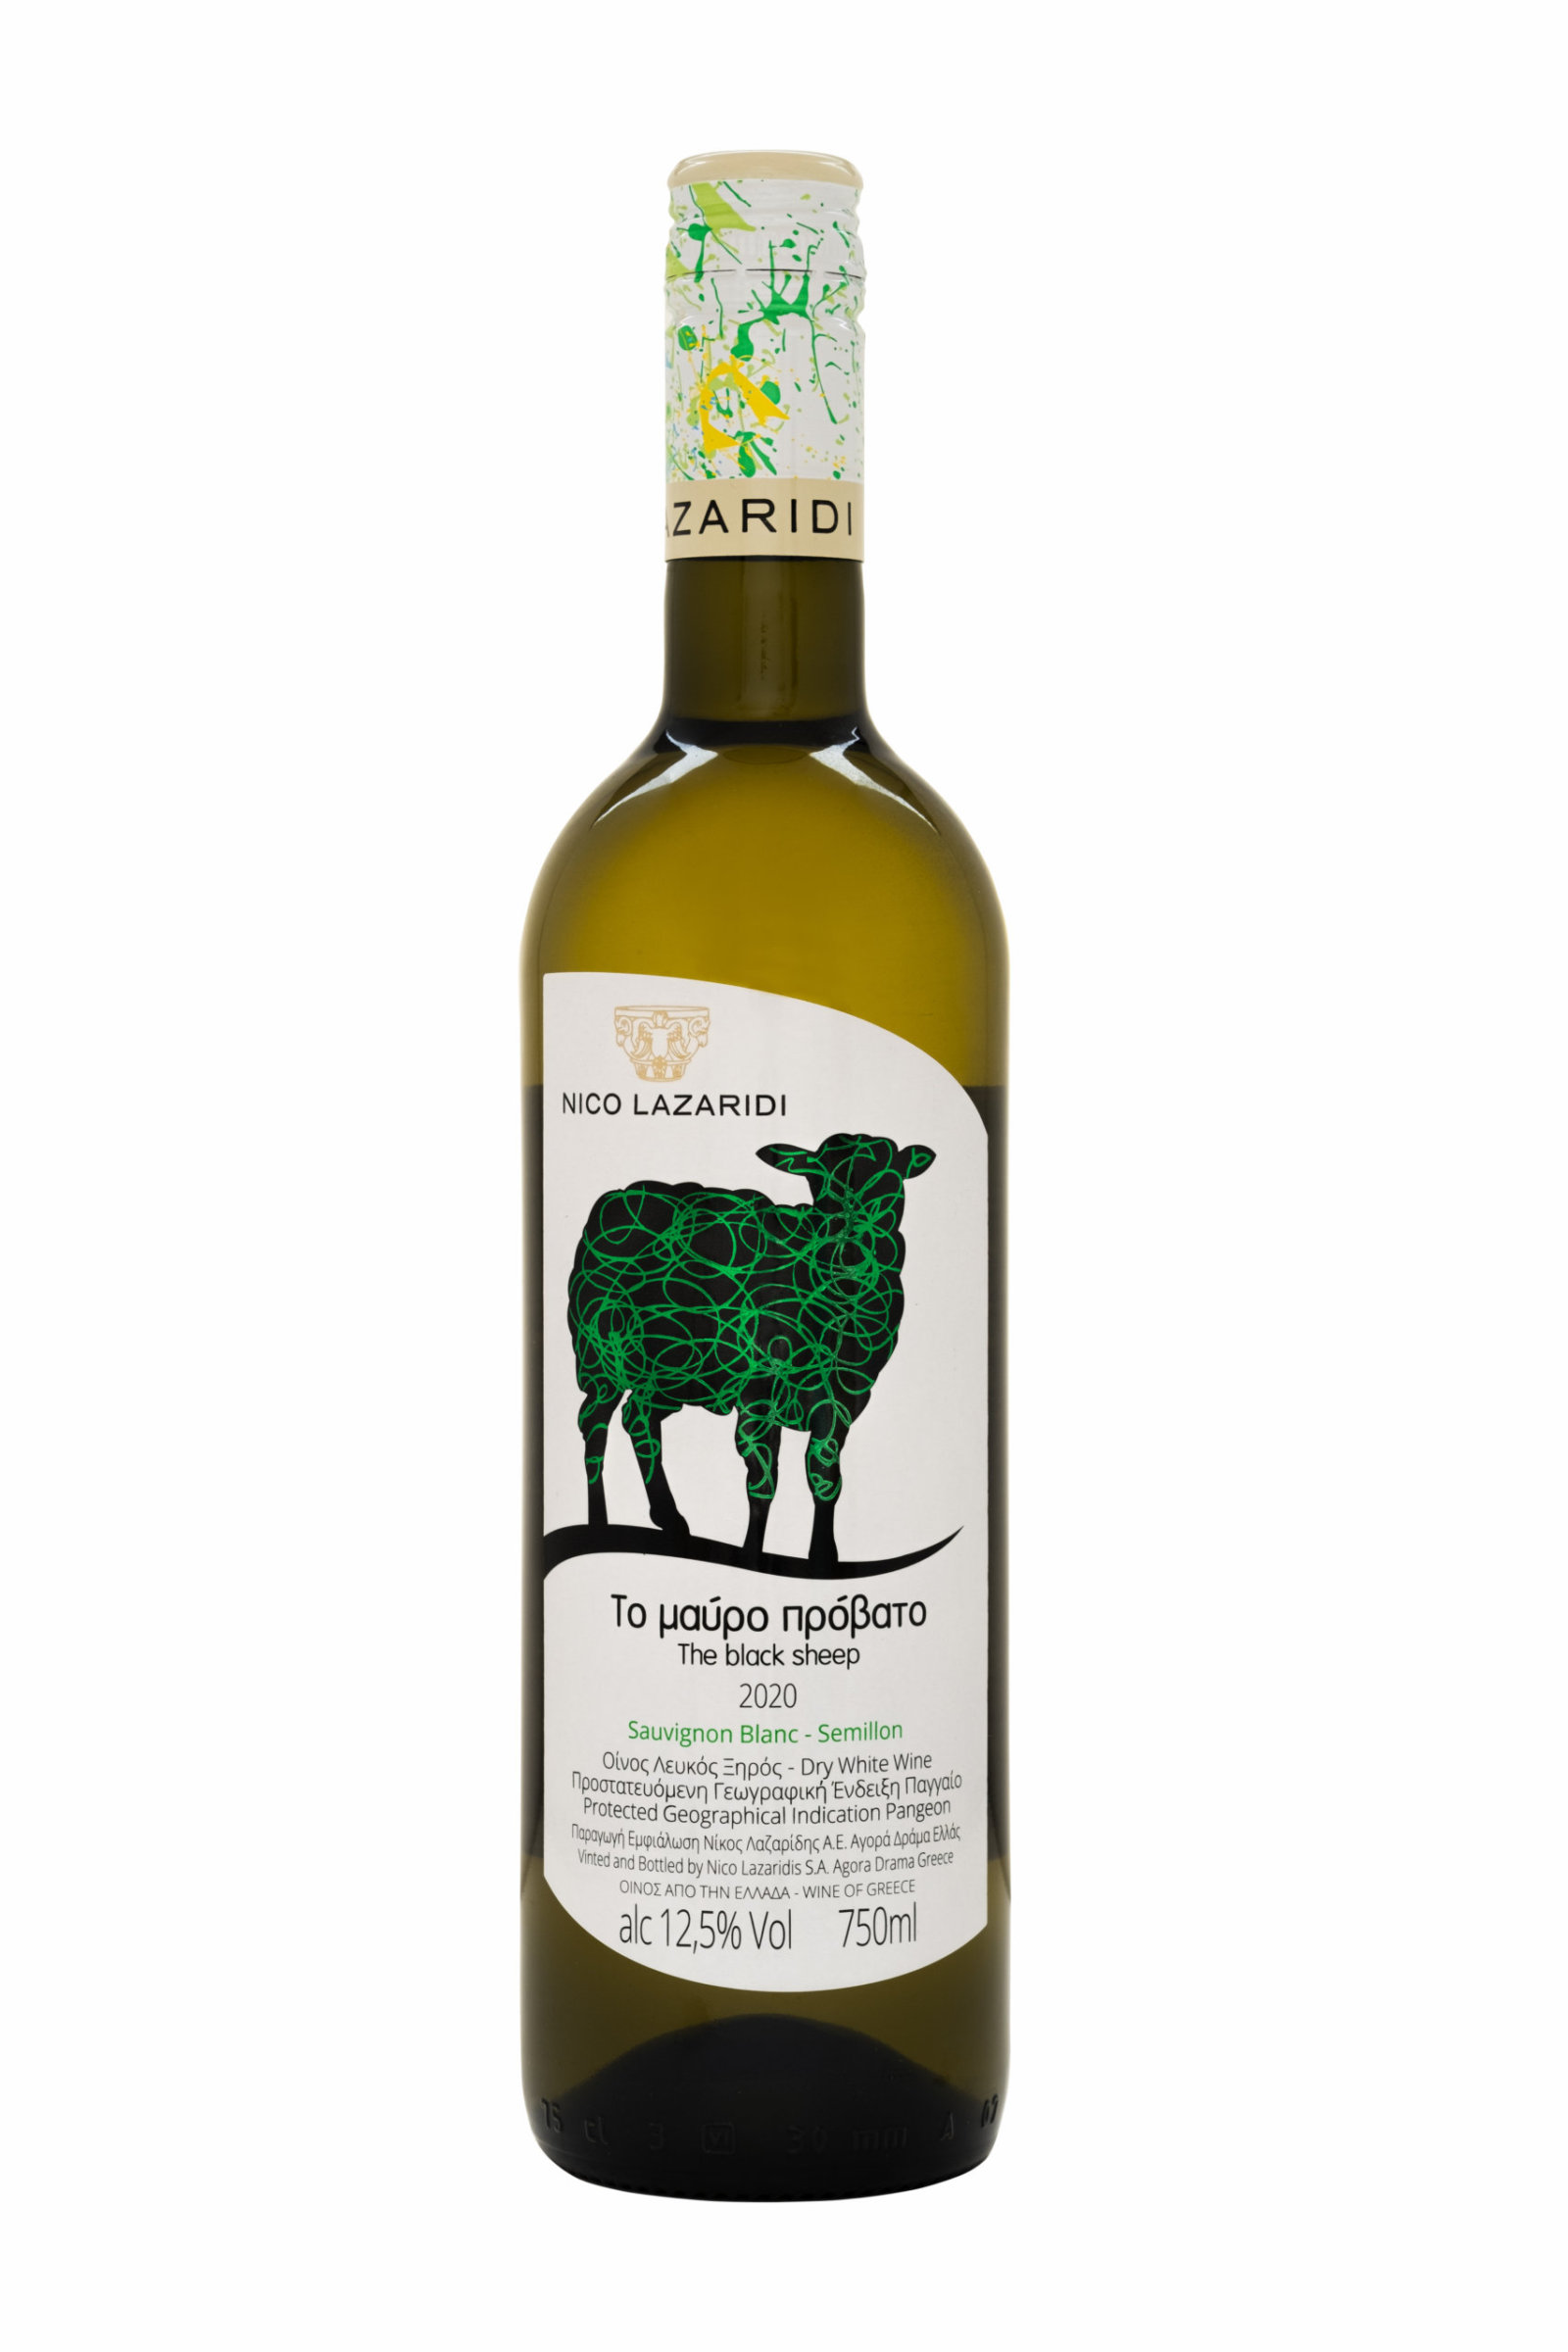 The Black Sheep Sauvignon Blanc - Semillon 2020